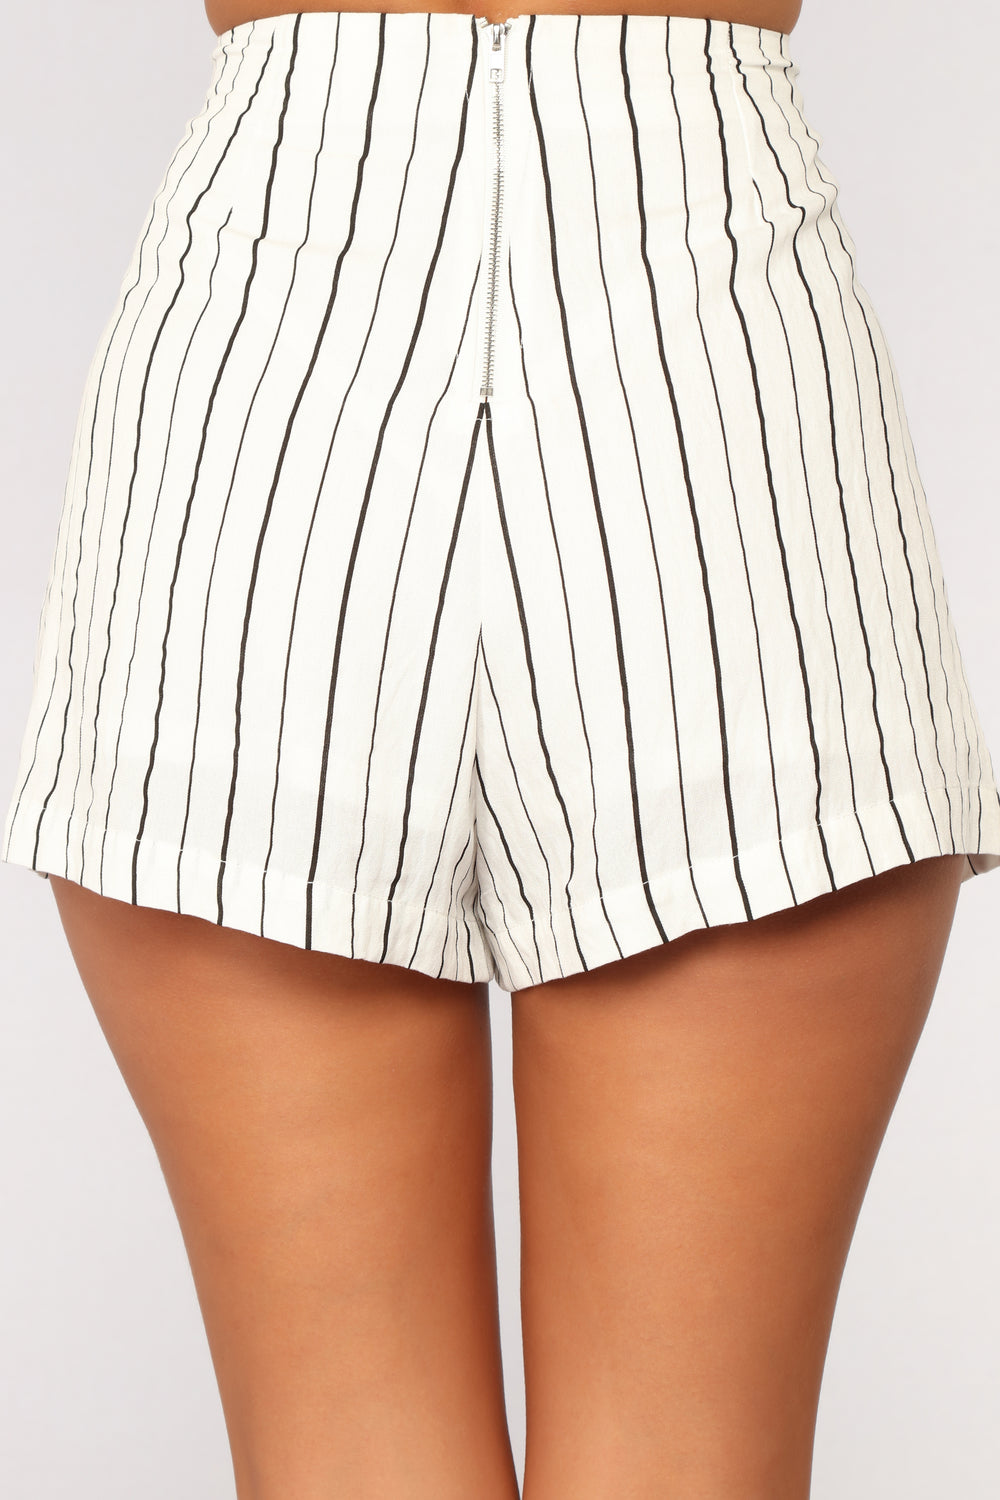 So Breezy Striped 3 Piece Set - Ivory